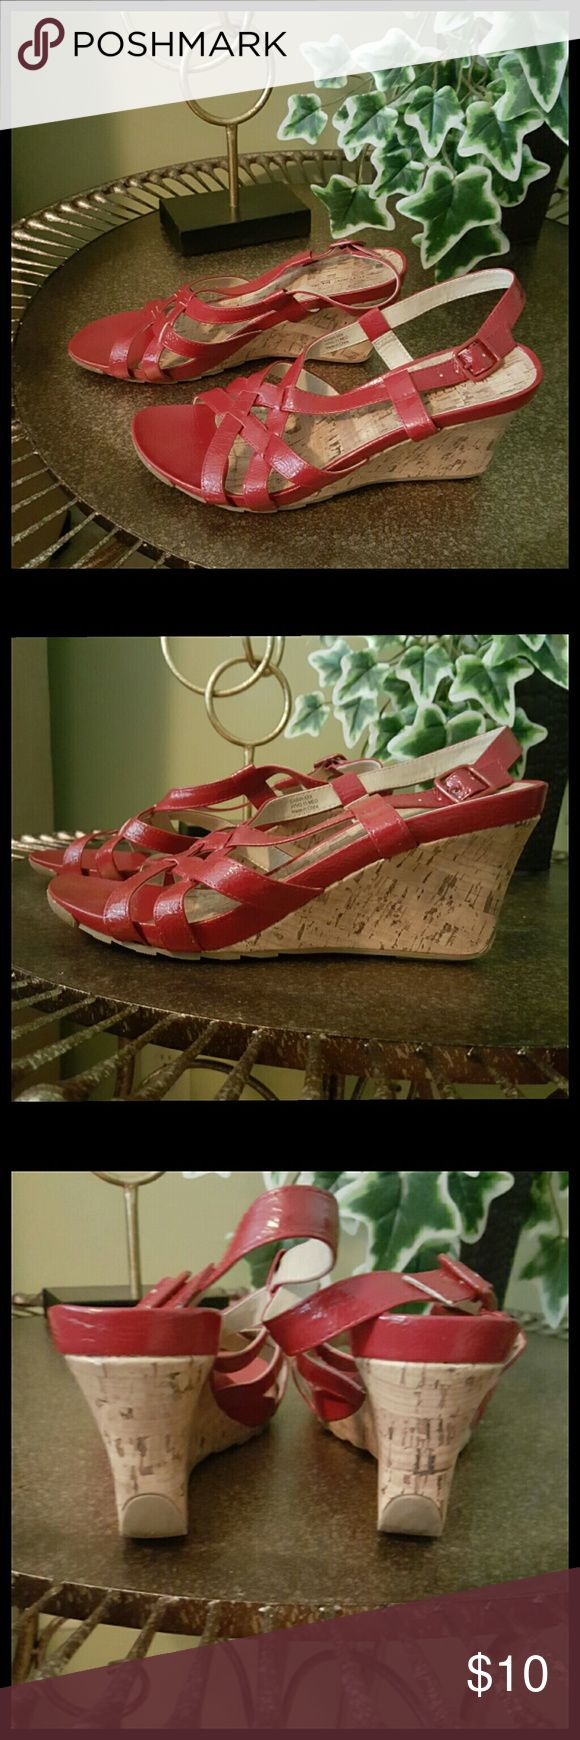 Red Wedge Heels Excellent condition! Size 11M, 3.5 inch heel Box not included.  Bundle and save! Kenneth Cole Reaction Shoes